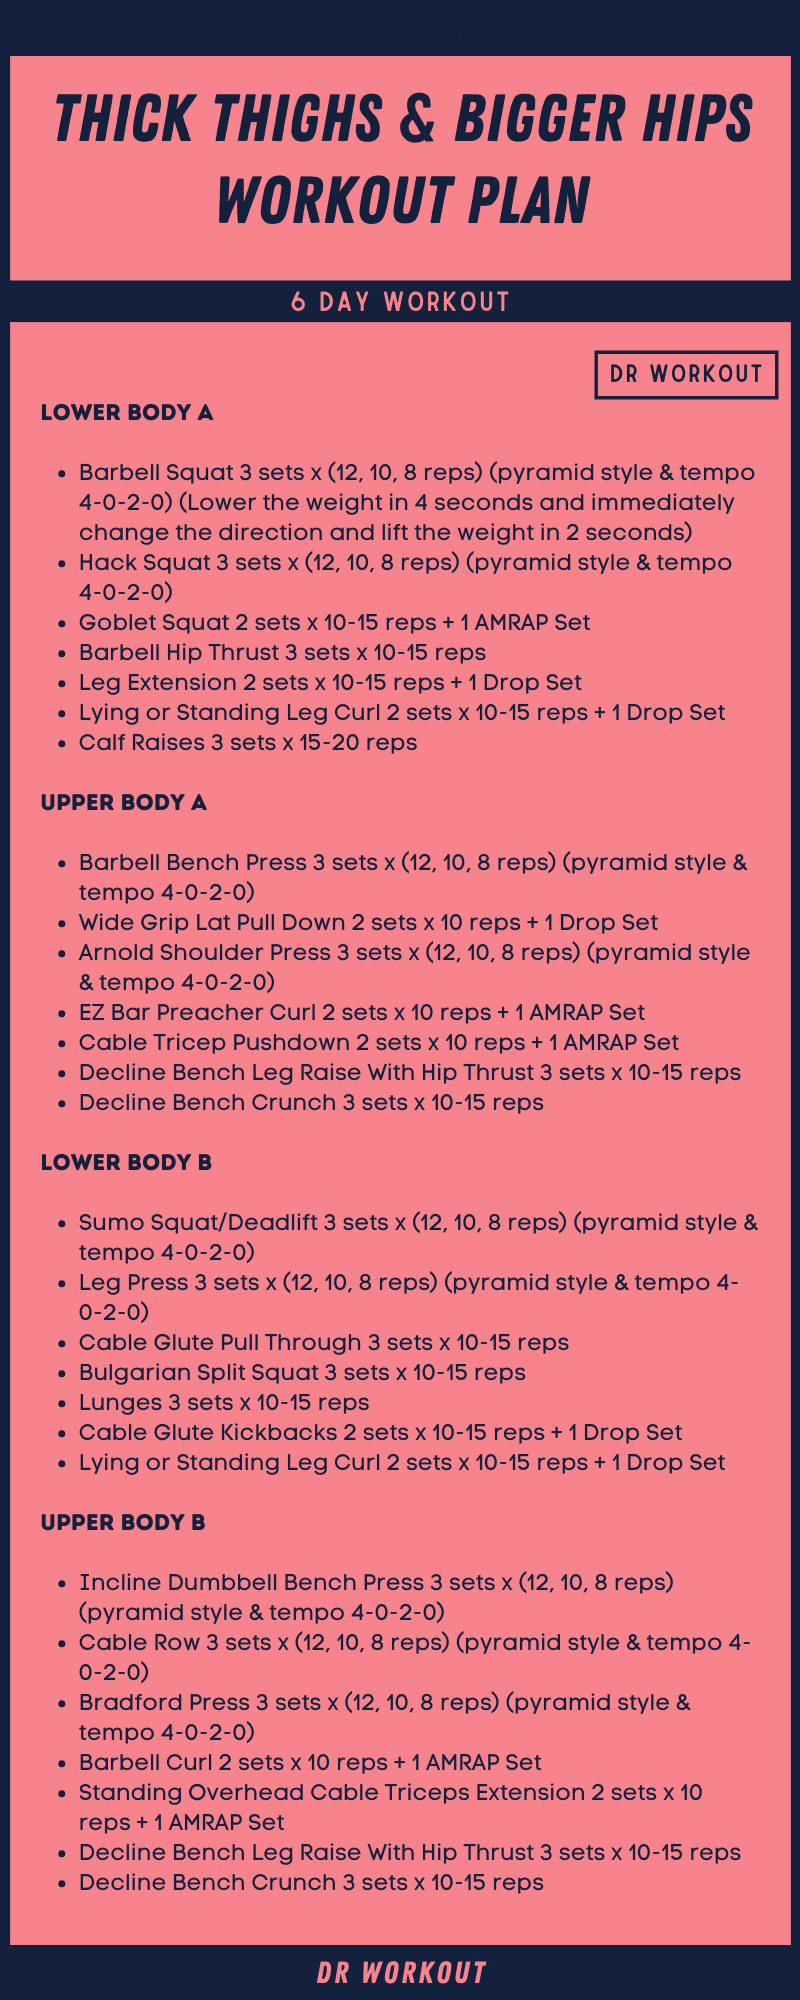 Thick Thighs & Bigger Hips Workout Plan